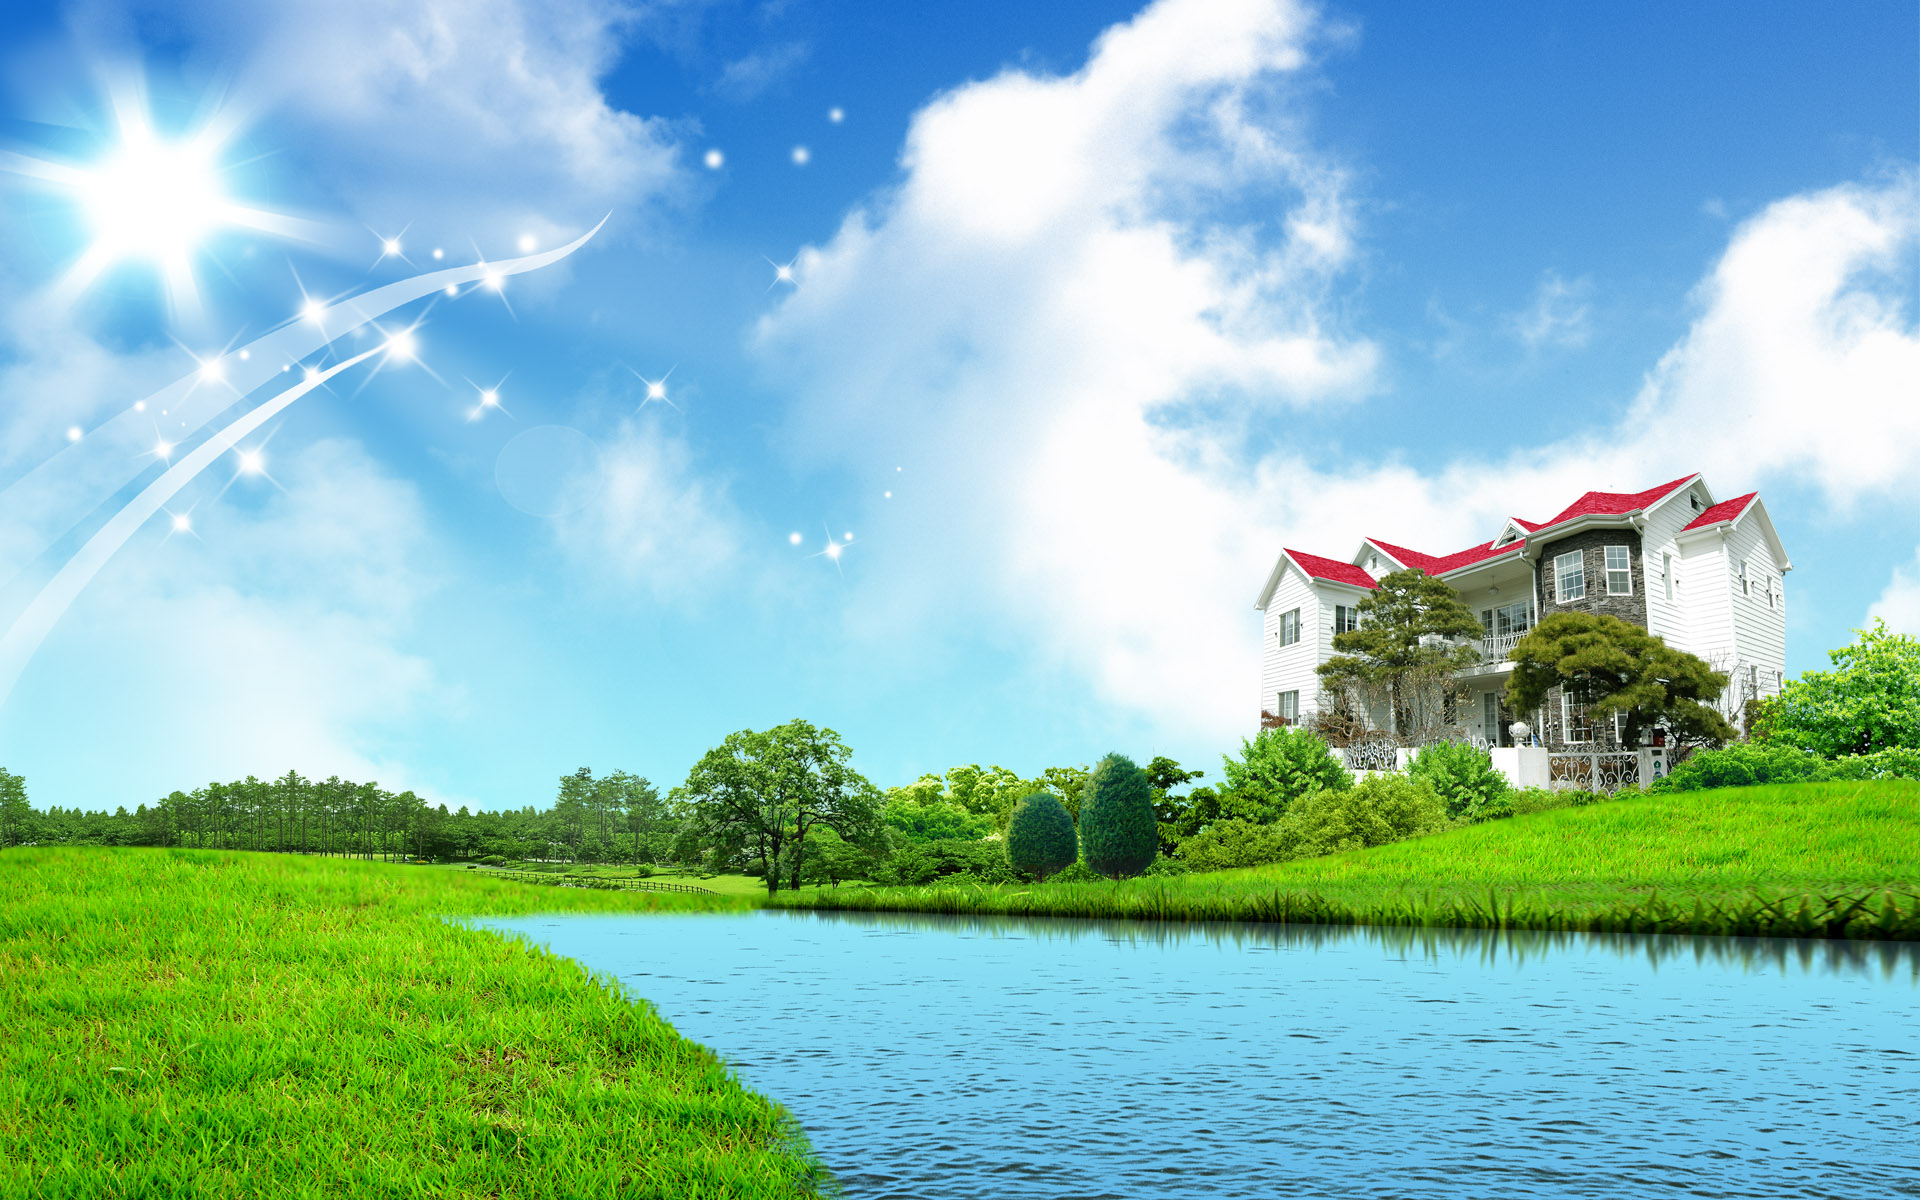 Home Scenery Wallpaper